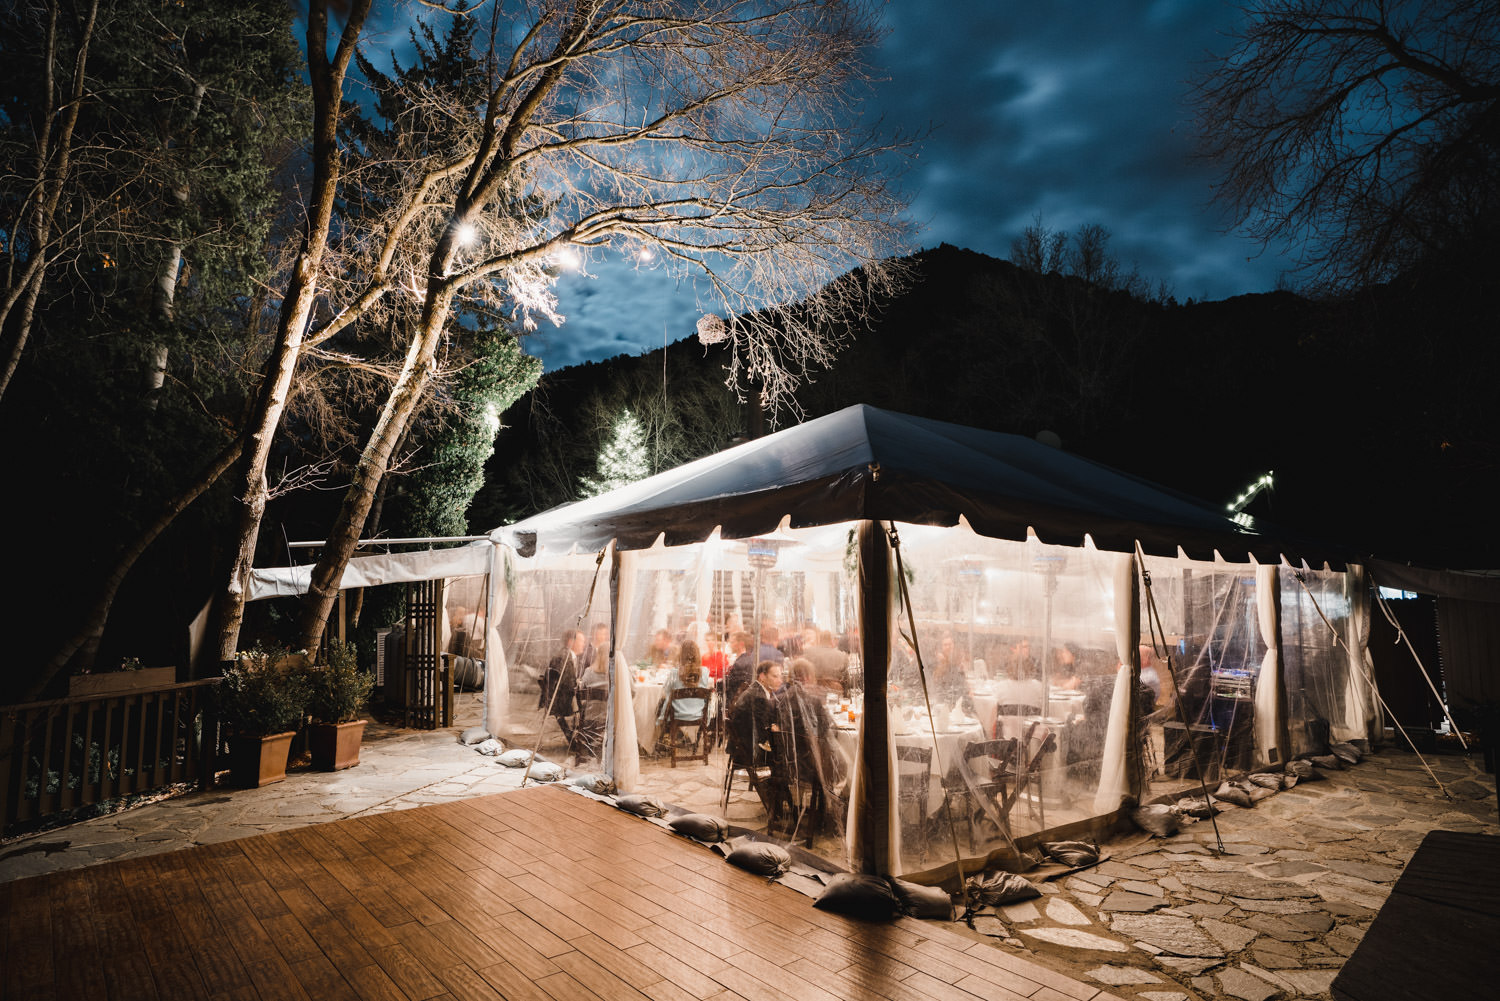 Millcreek Inn wedding lit-up tent under night sky photo